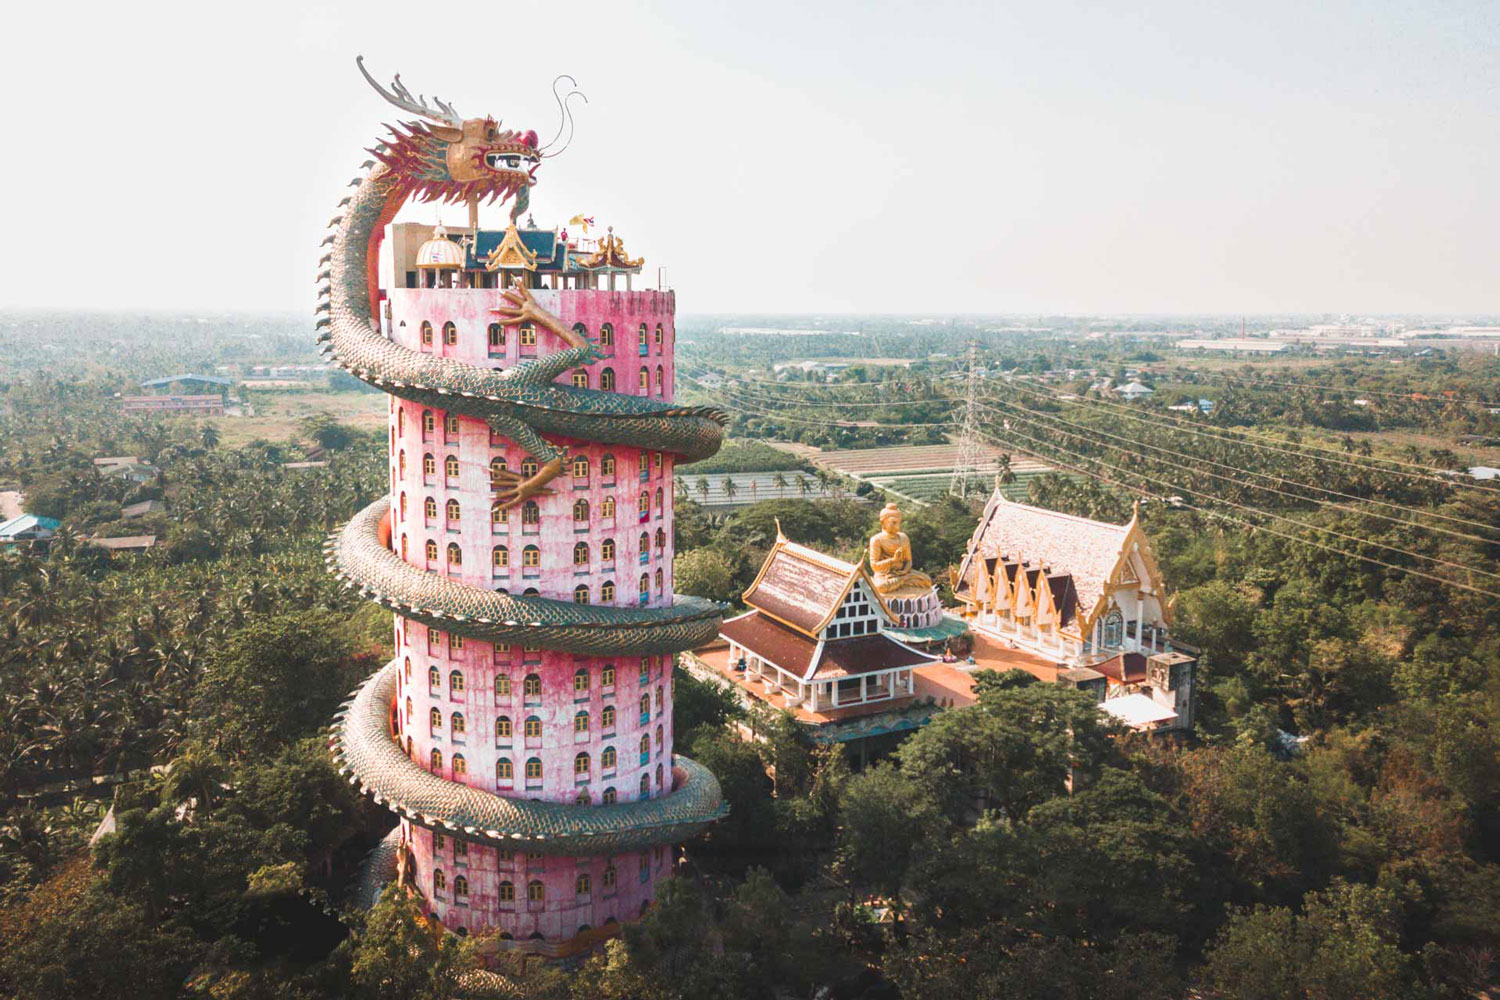 Dragon temple filming location in Thailand